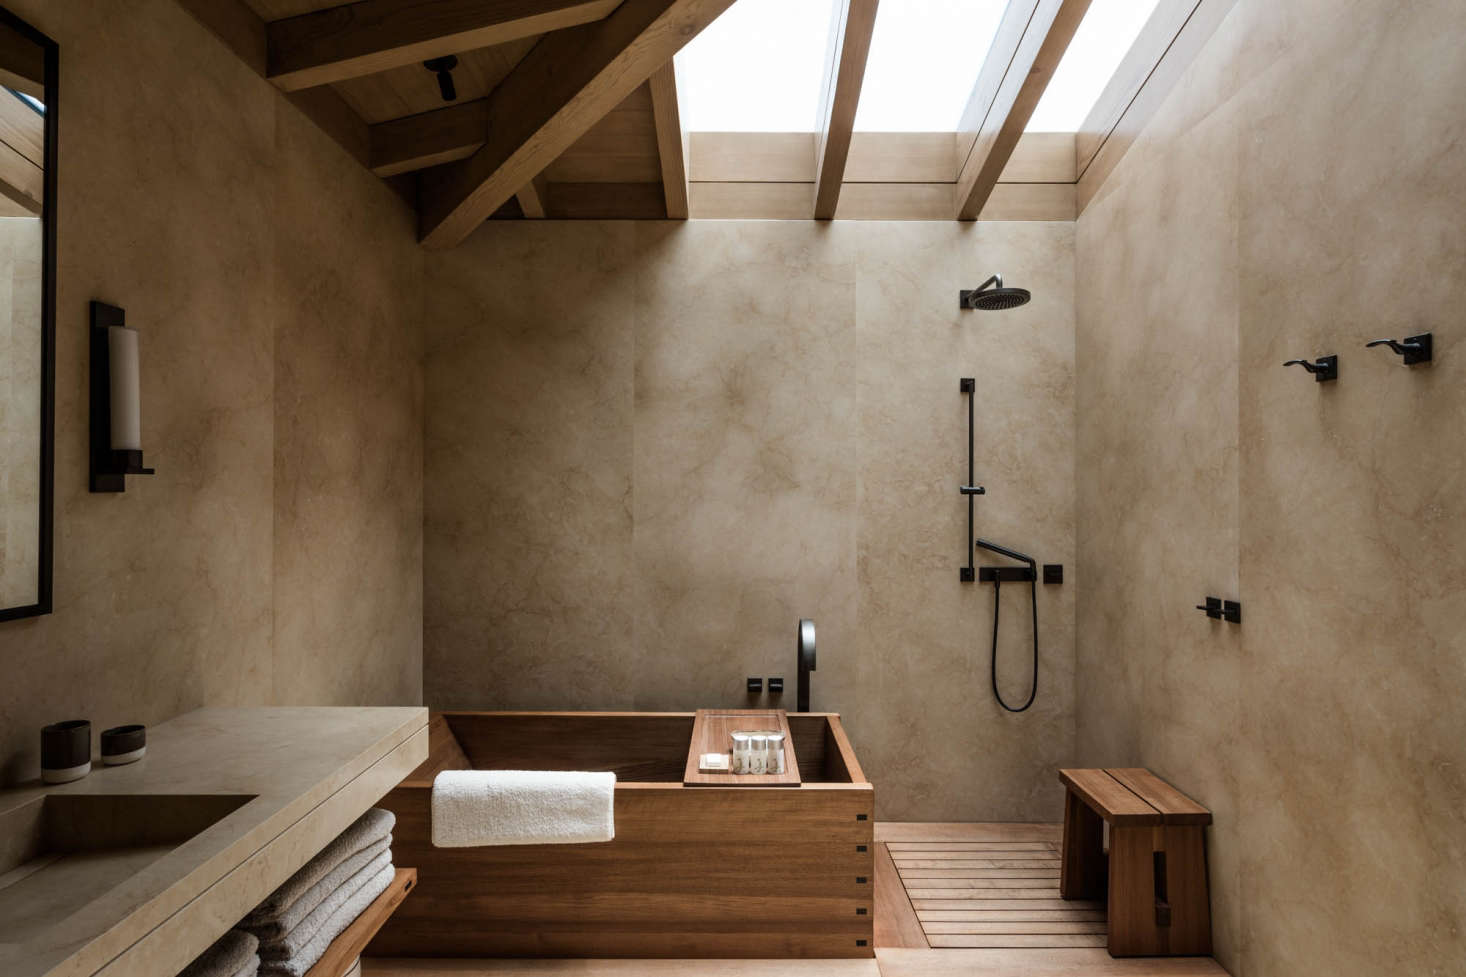 The walls and floors of the bathrooms are wrapped in Jerusalem limestone and the soaking tubs are made of teak; the hardware is bronze and the fixtures are from the Dornbracht MEM Line.